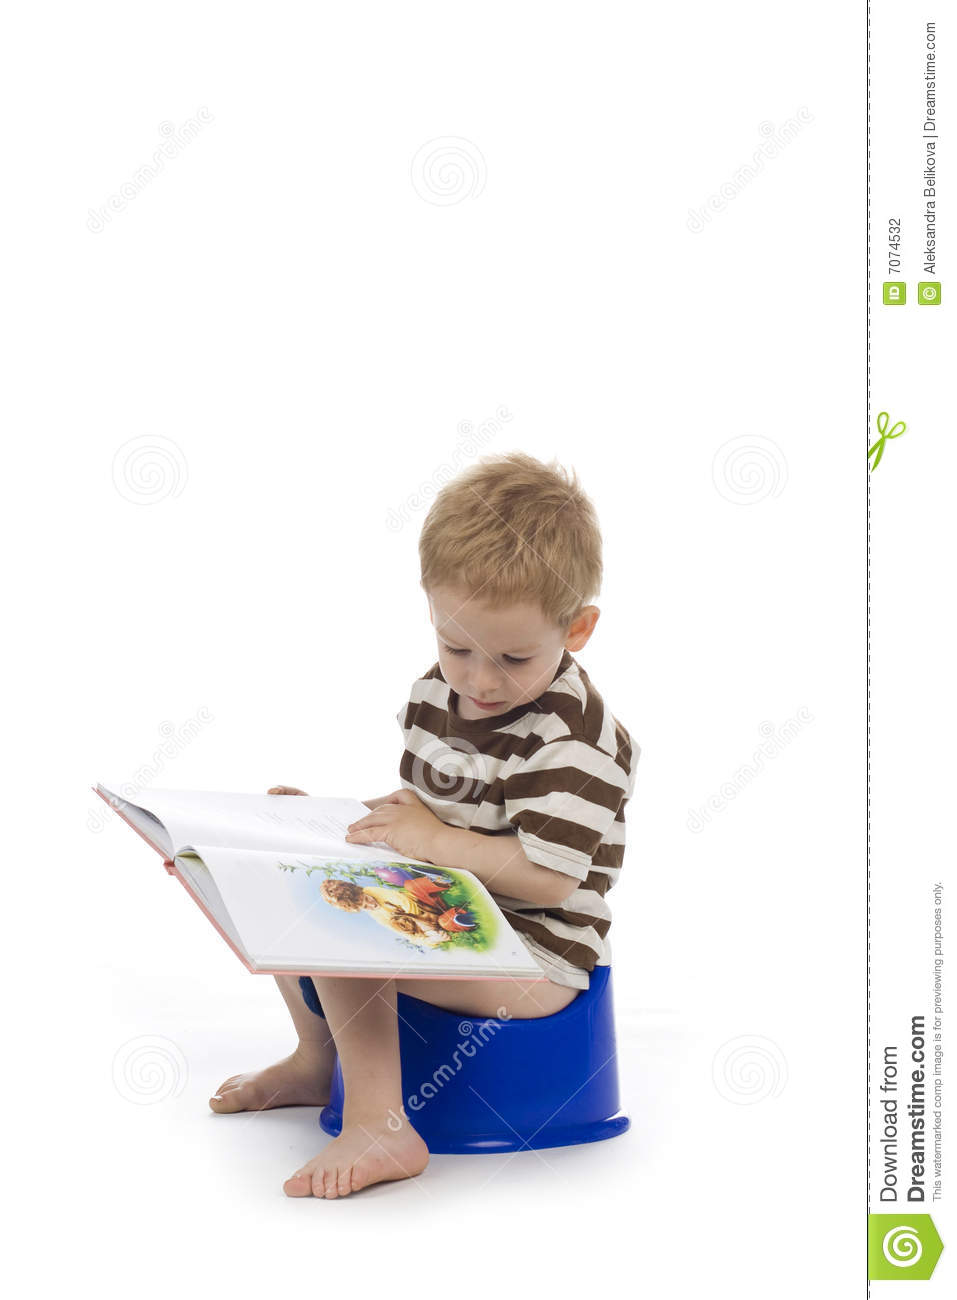 Child On Potty Stock Photography Cartoondealer Com 18393326